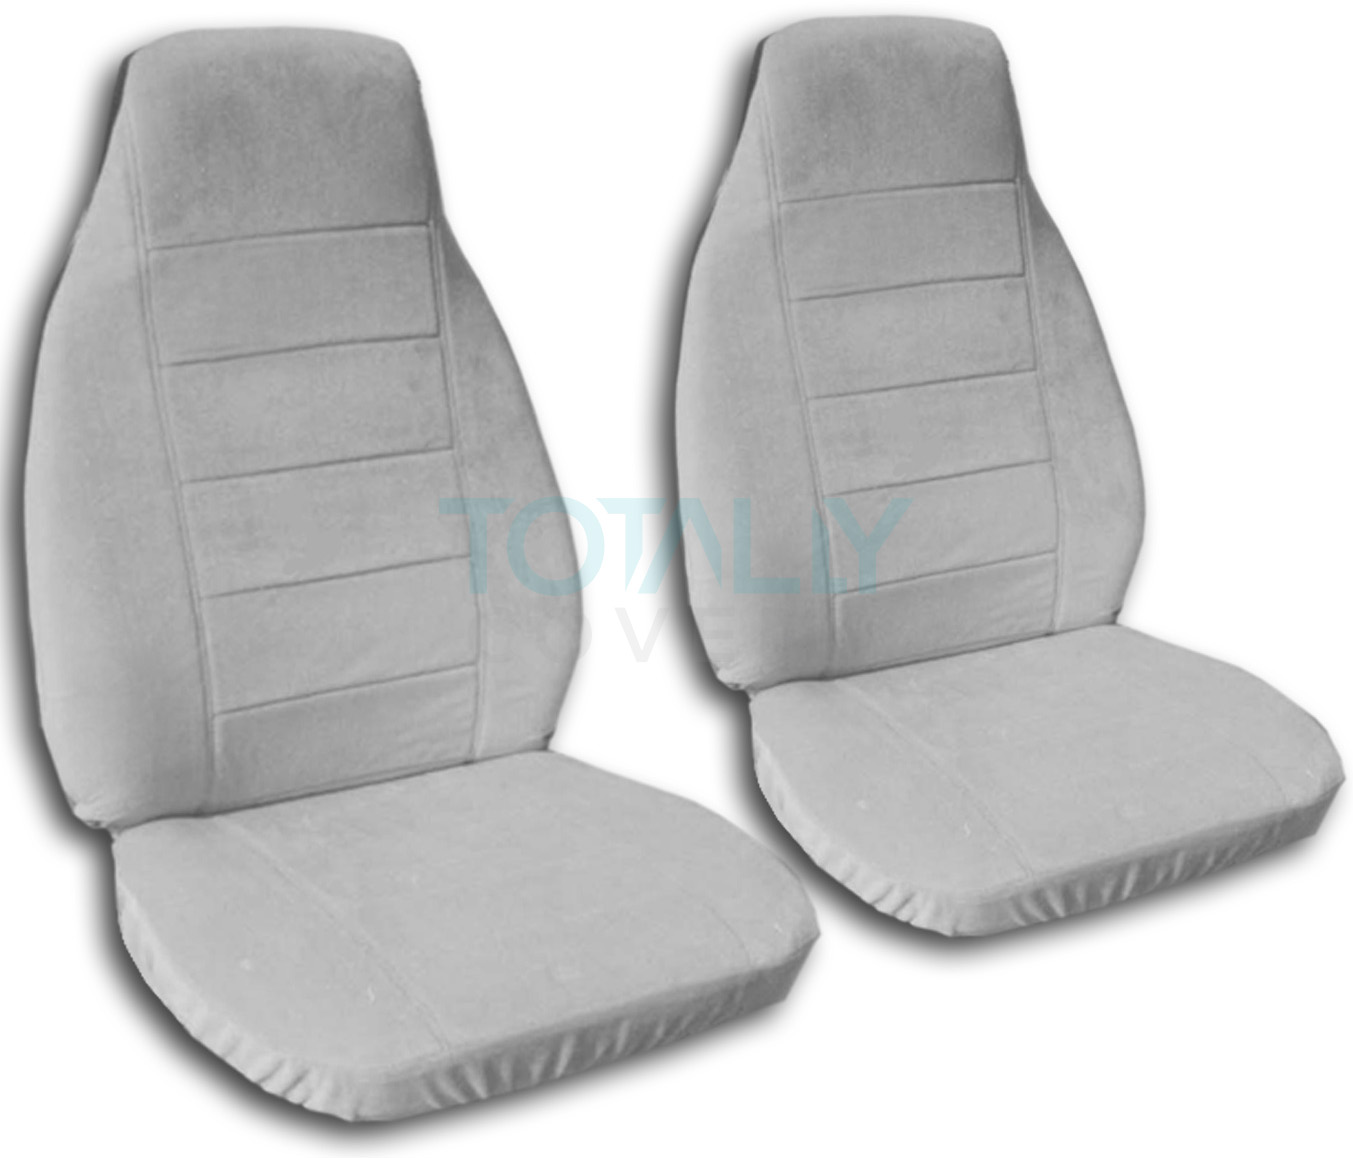 Car Seat Covers Navy Blue